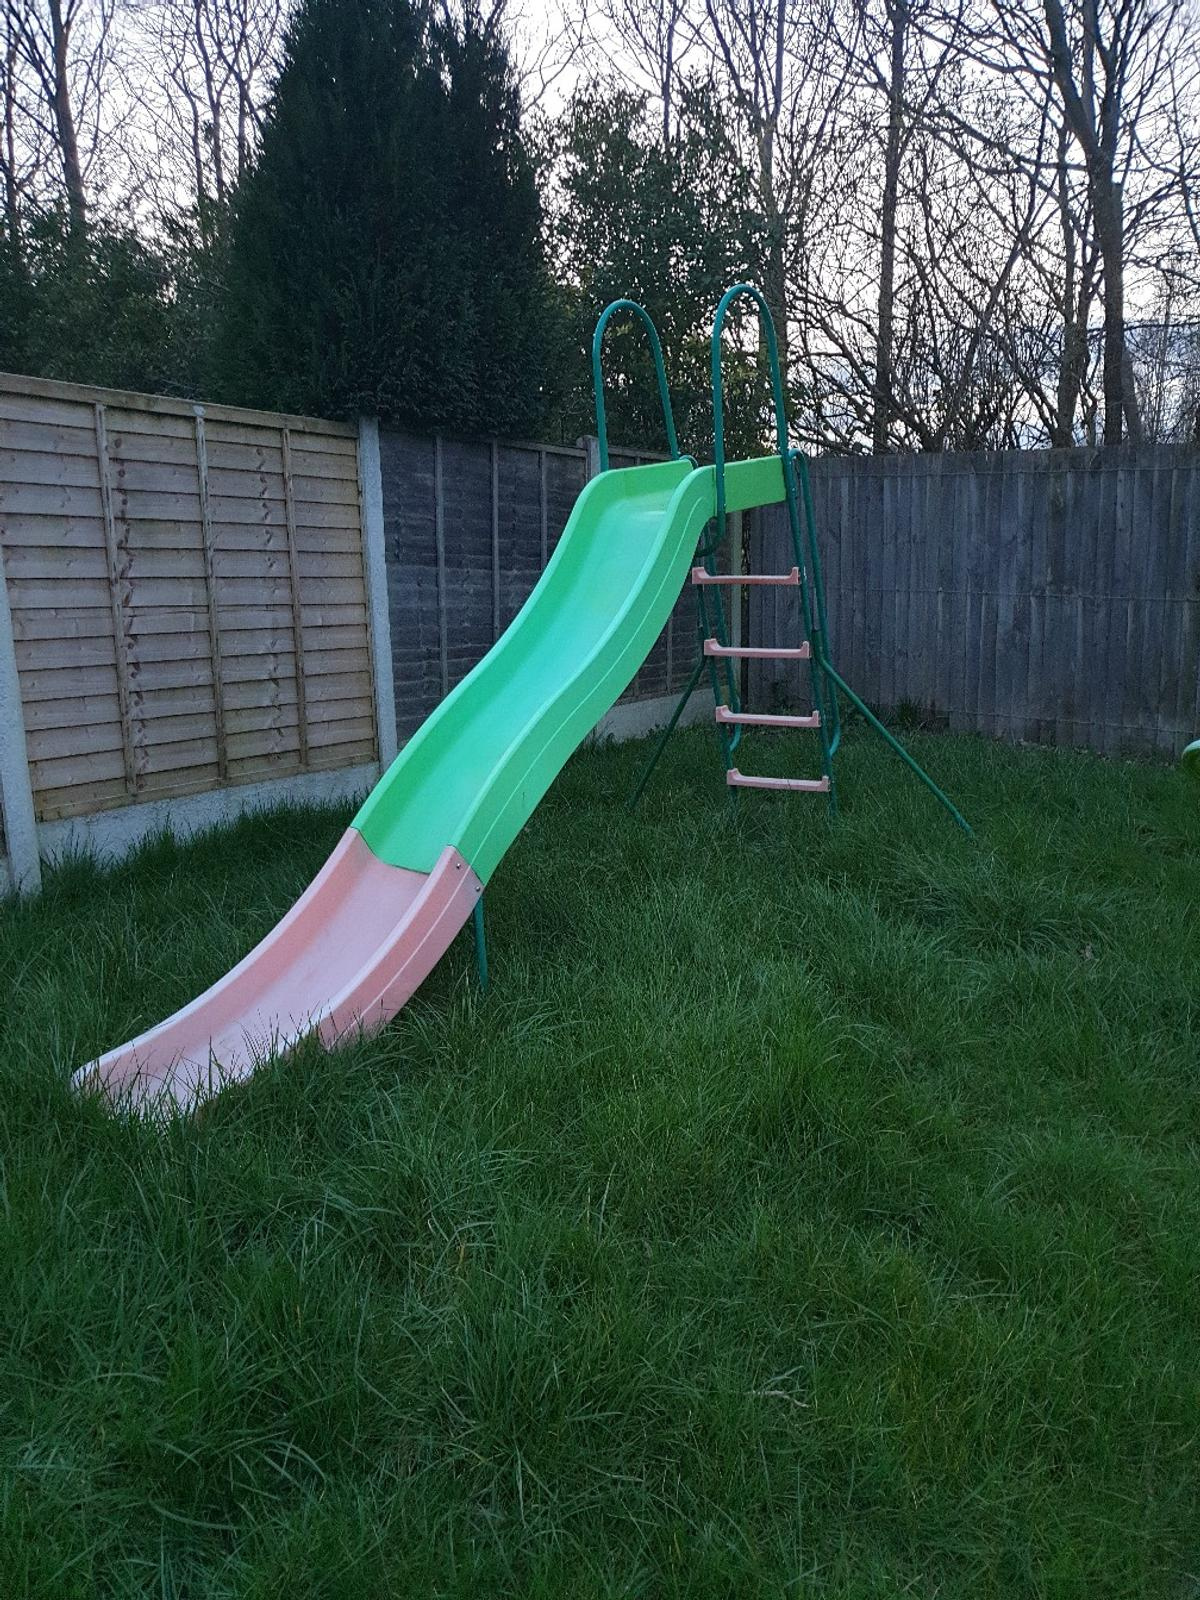 Cost £130 will sell it for £80 no offers as still very good my kids have grown out of it now as they 12 barely been used tbh very sterdy ideal for the kids as going out in your garden is the only thing you can really do so ideal for this time. collection is preferred can deliver but there would be a charge for delivery.